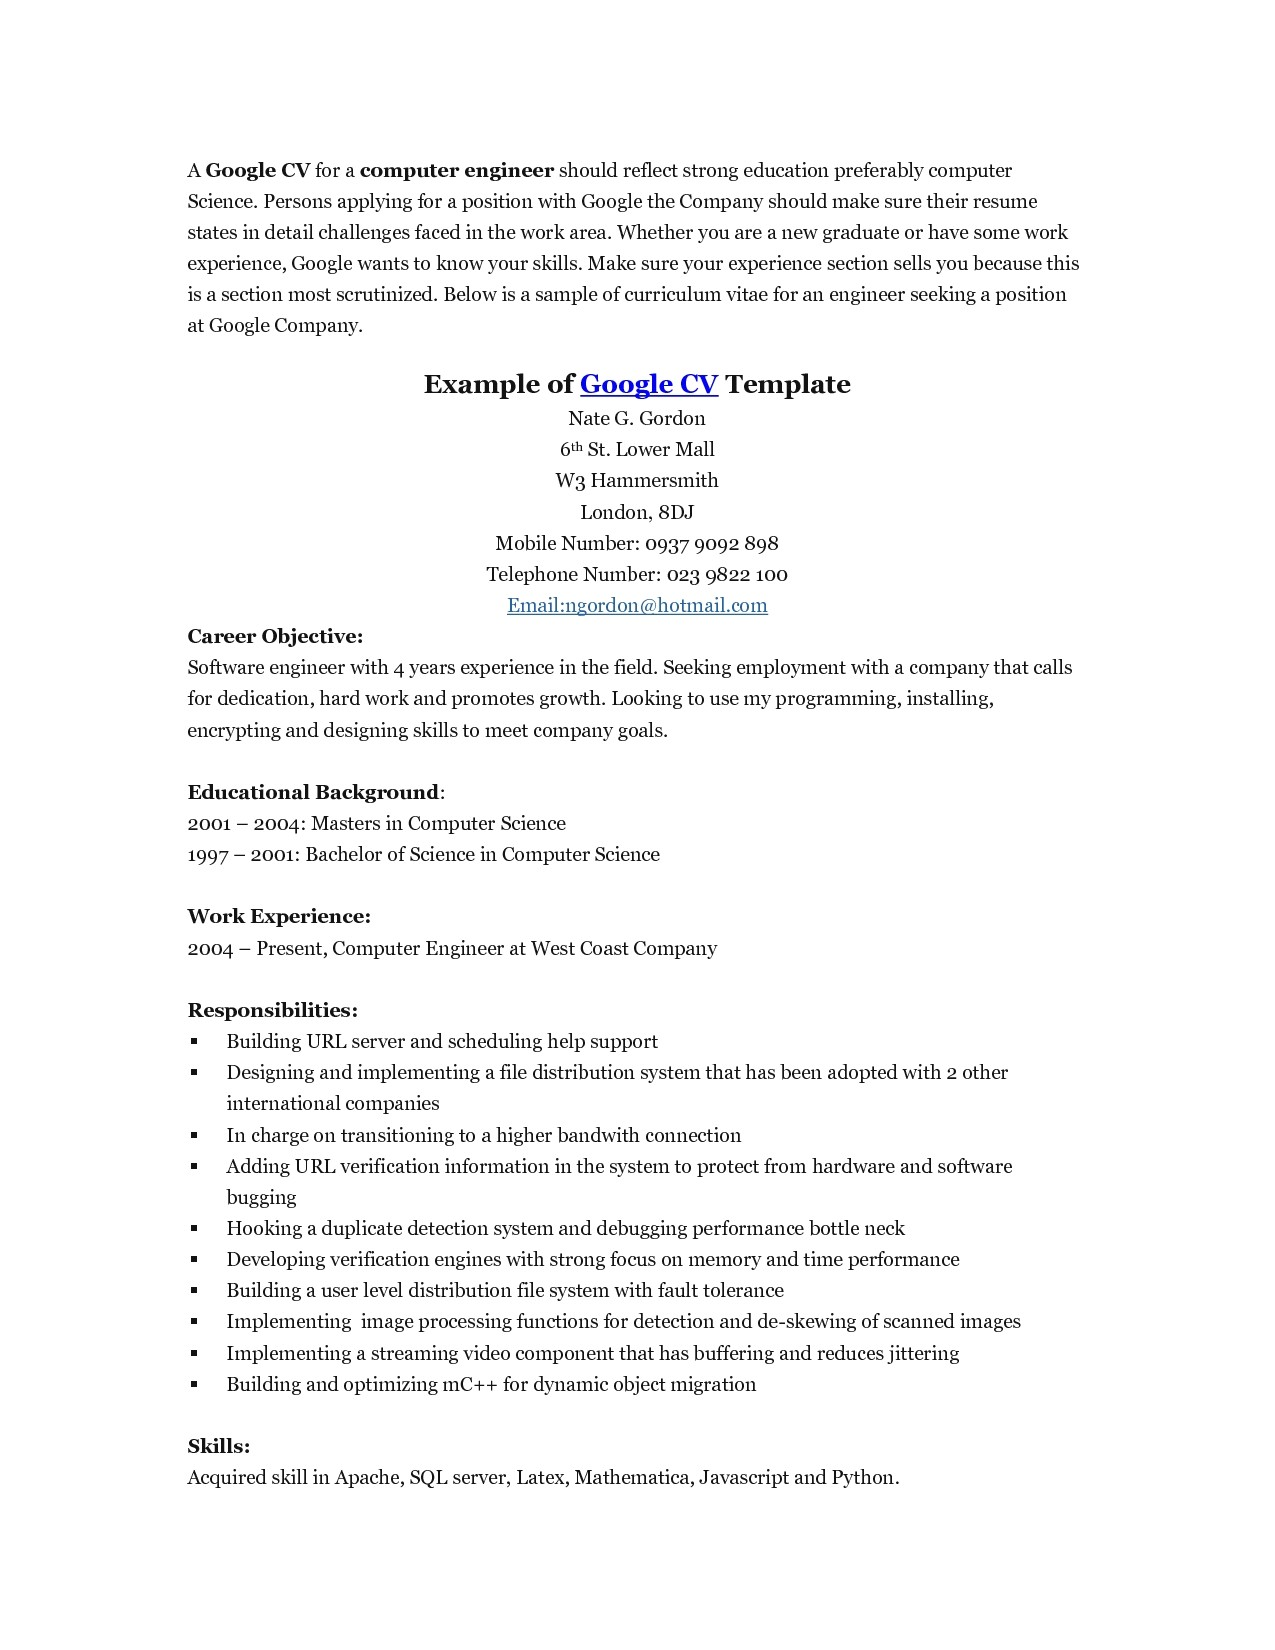 Google software Engineer Resume Sample Google Resume Examples Resume and Cover Letter Resume